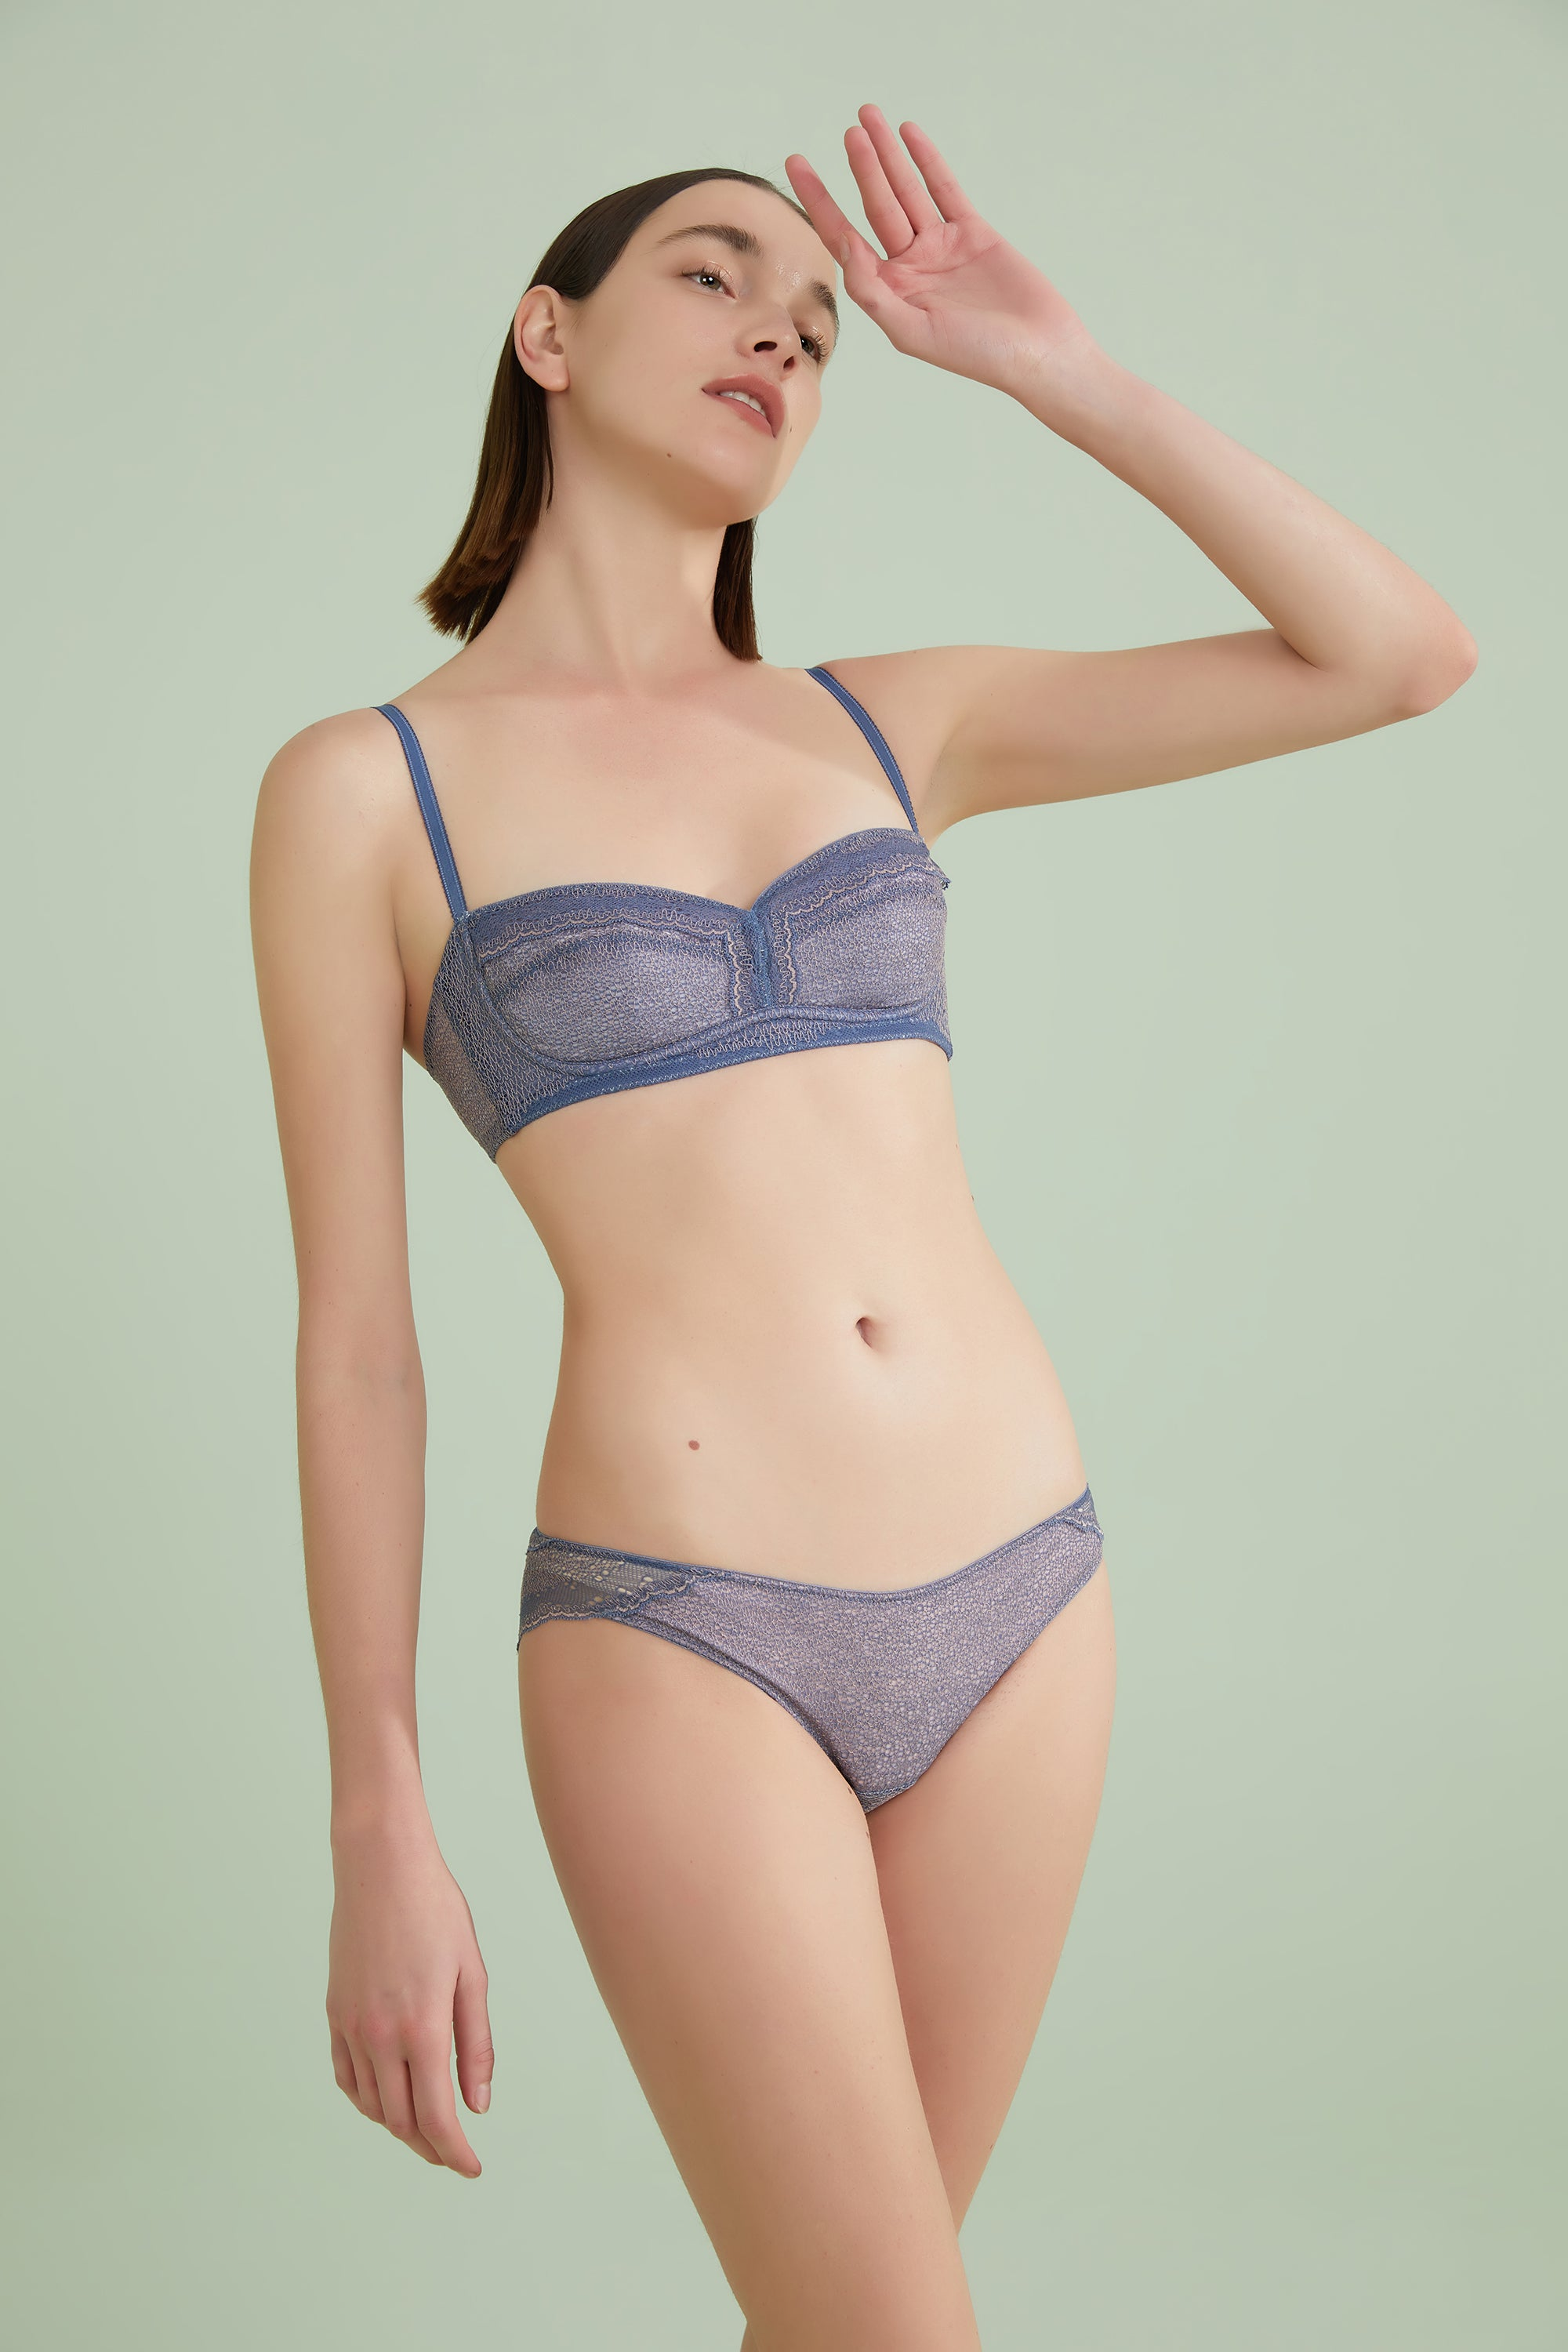 Model wearing NEIWAI's Belle Lace bra and brief set in Twilight Purple.